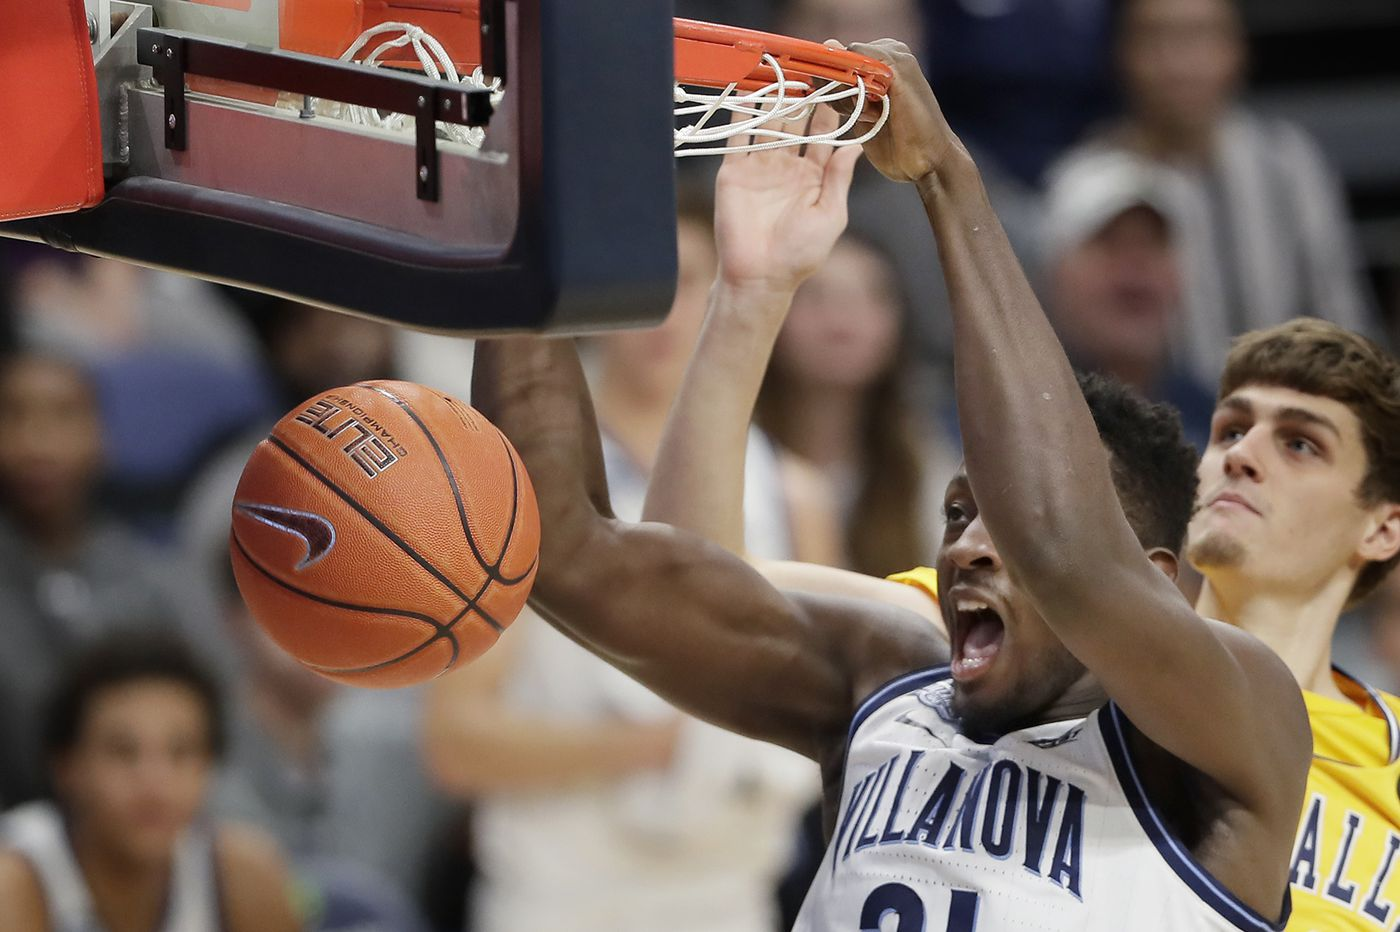 Villanova 83, La Salle 72: Stats, highlights, and reactions from the Wildcats' Big 5 opener